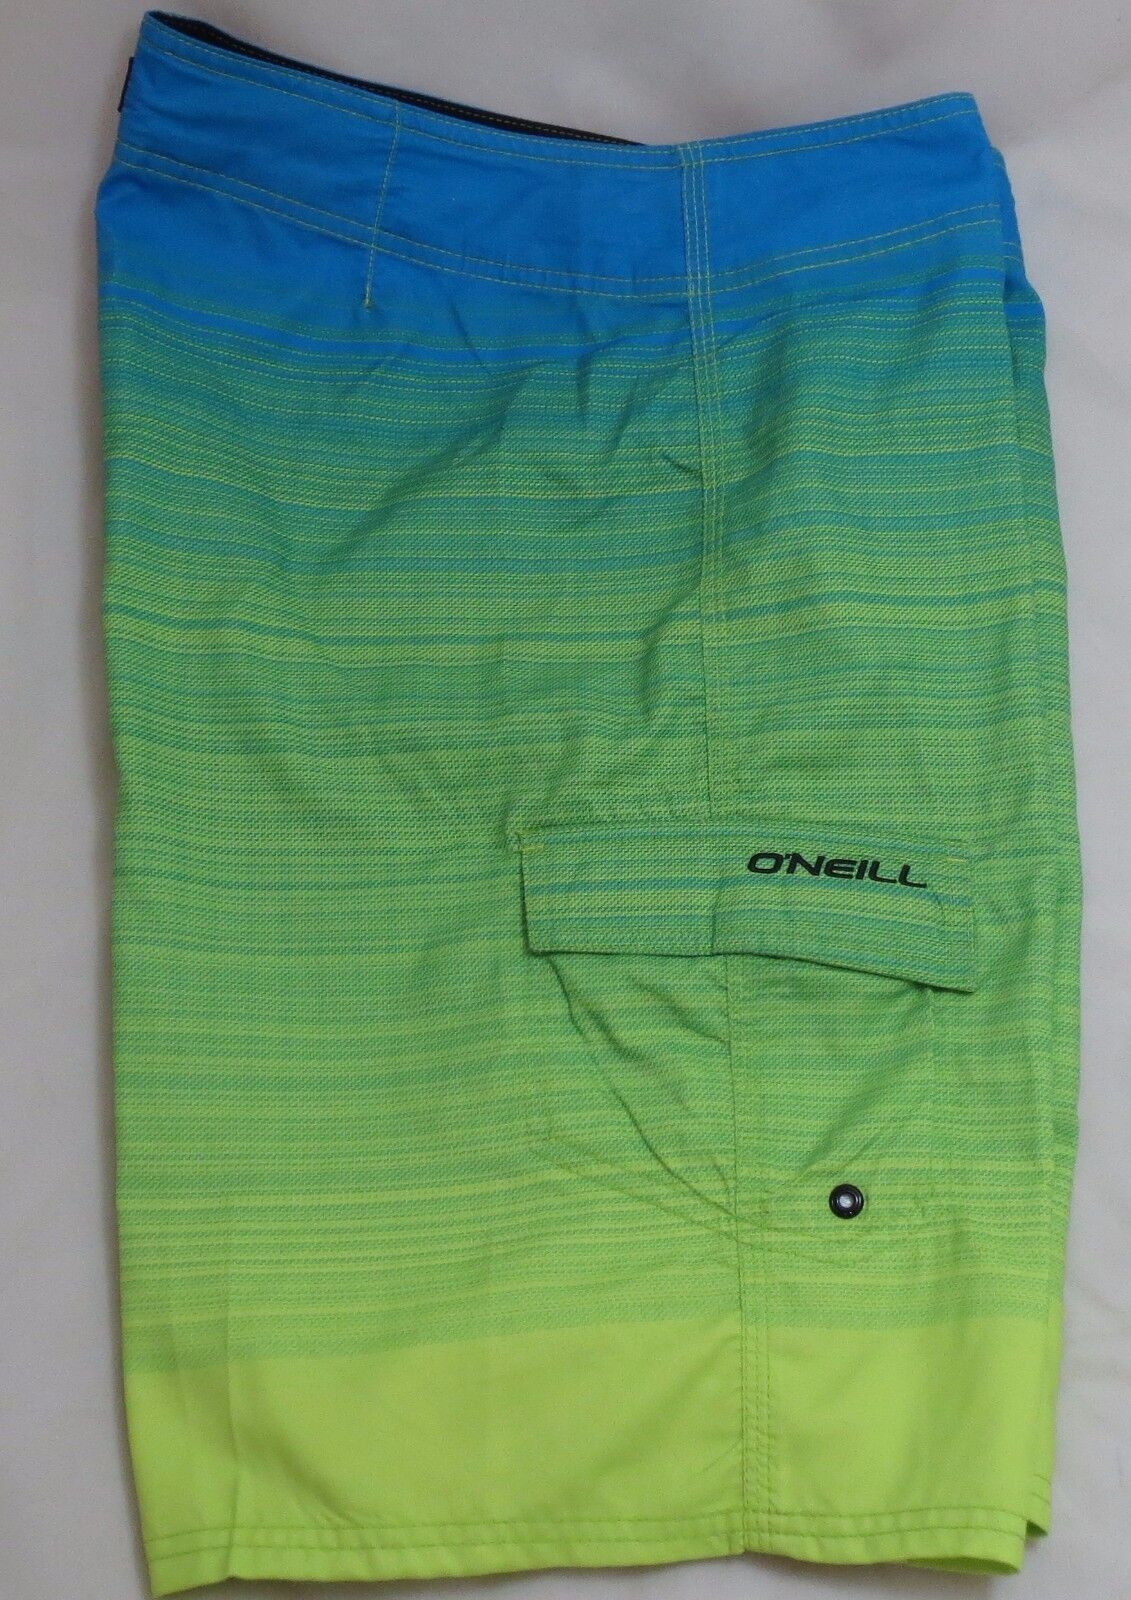 Men's O'NEILL Size 33 Tabago bluee Green Boardshorts Shorts Polyester MSRP